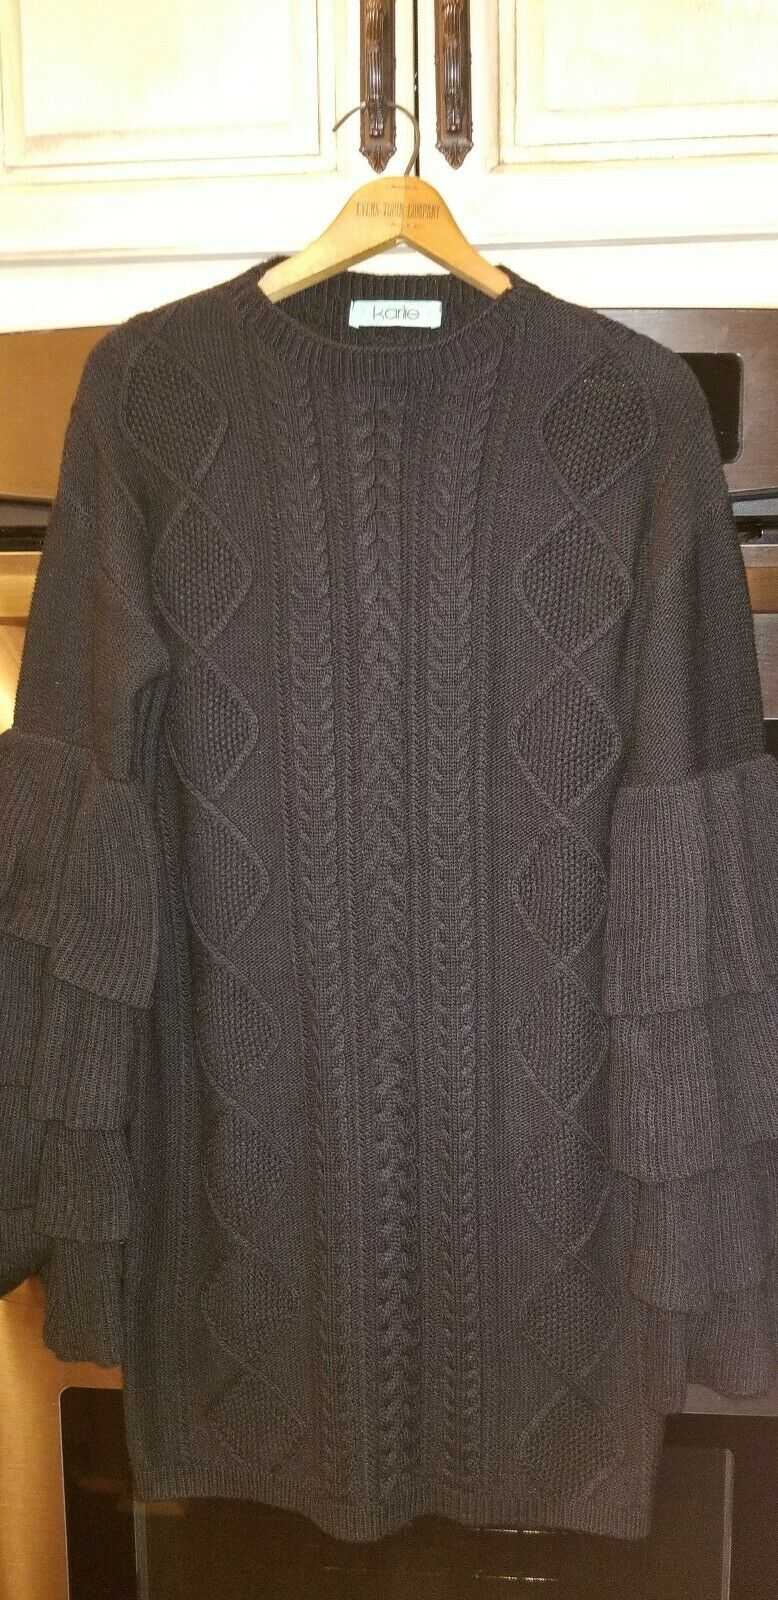 Karlie Brand Boutique Chandelier Sleeve Sweater Dress Ladies Size 4-6 (Small)